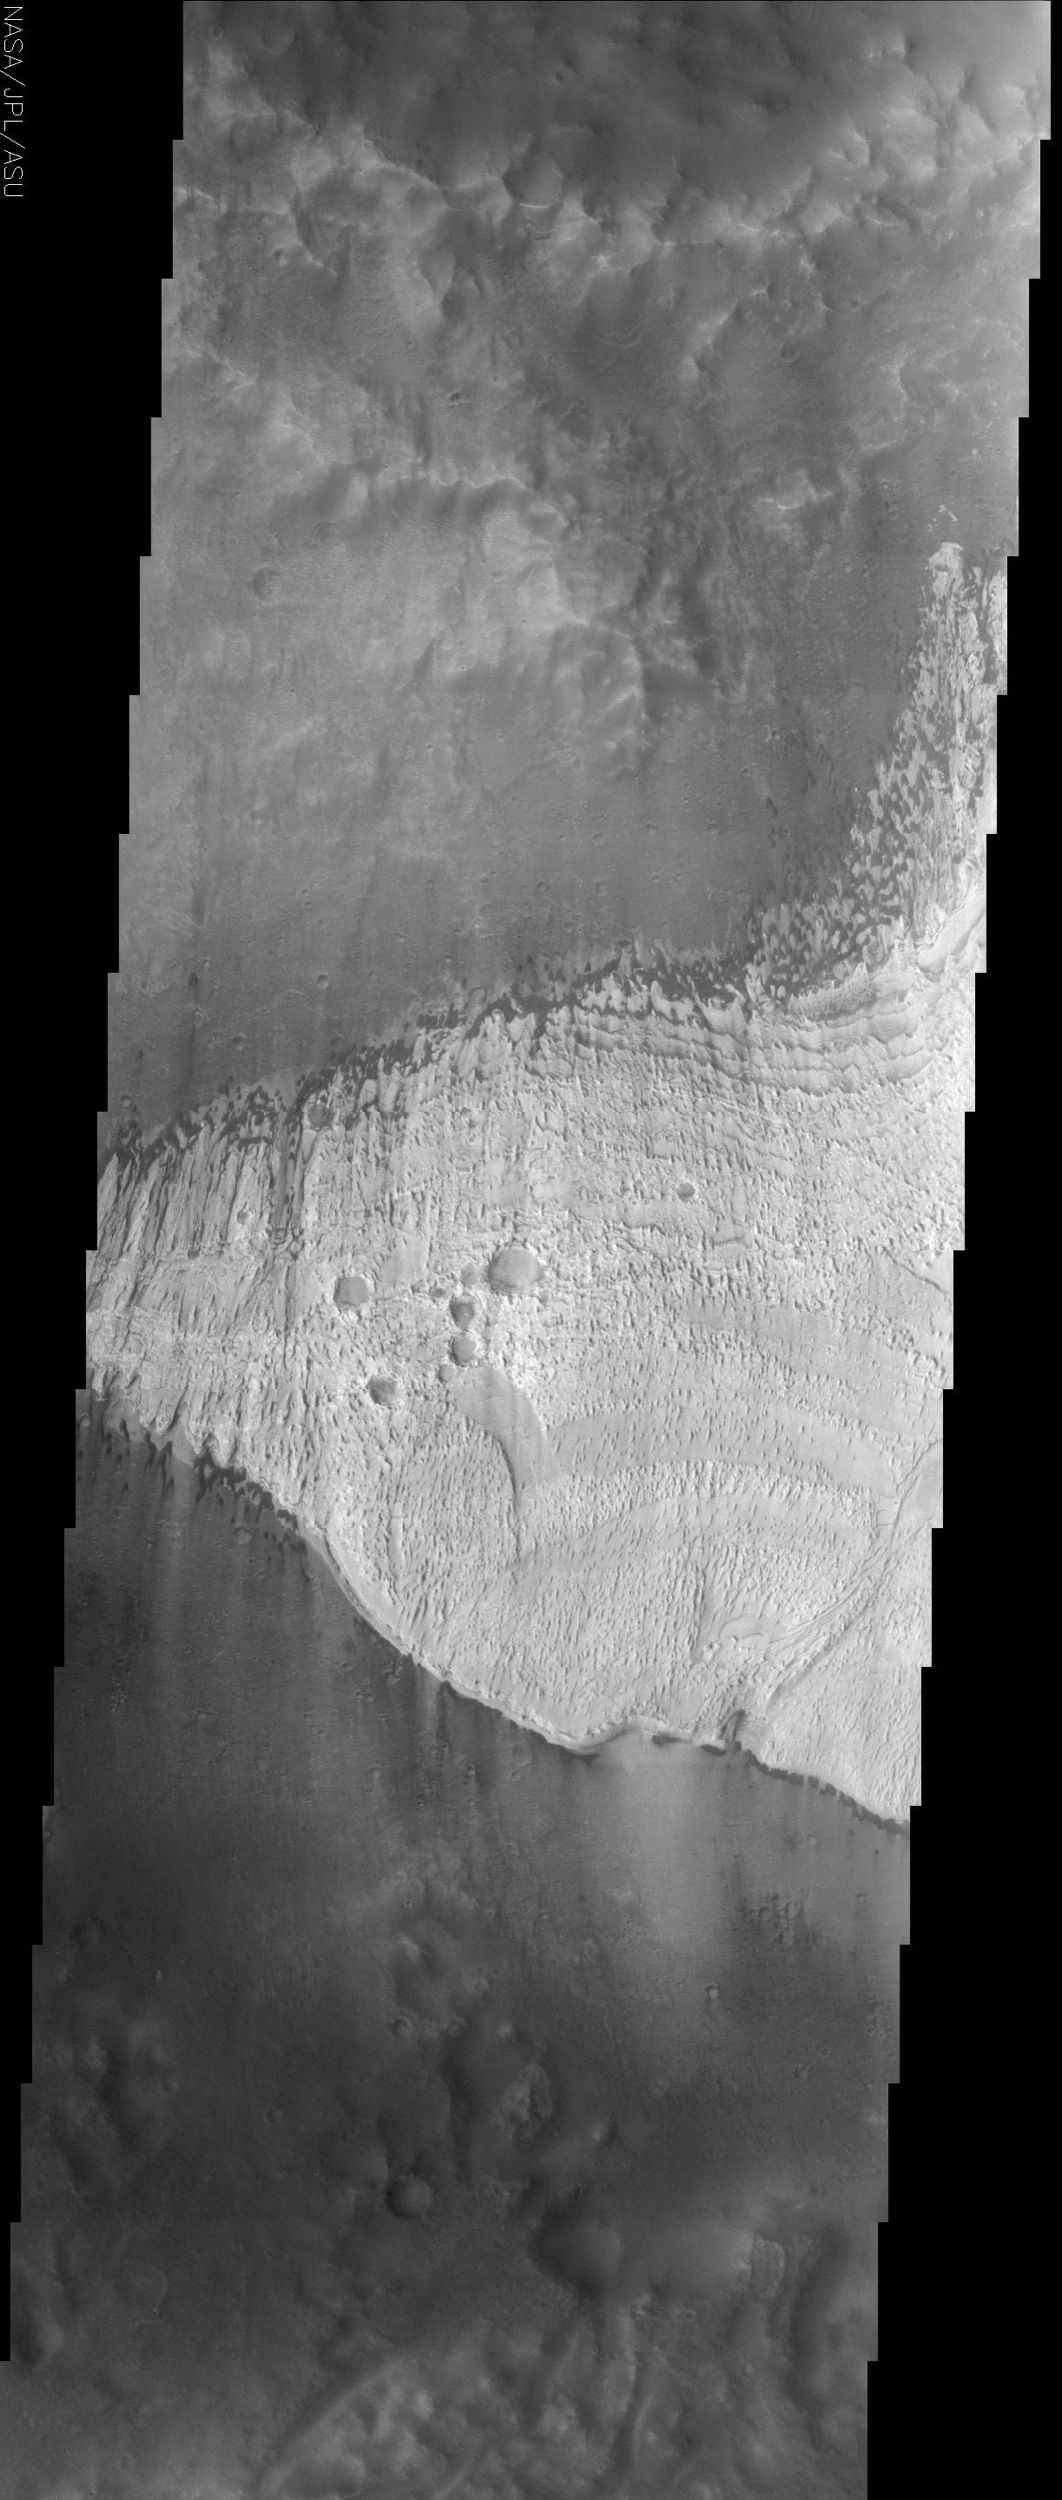 The finely layered deposit in Becquerel crater, seen in the center of this NASA Mars Odyssey image, is slowly being eroded away by the action of windblown sand.